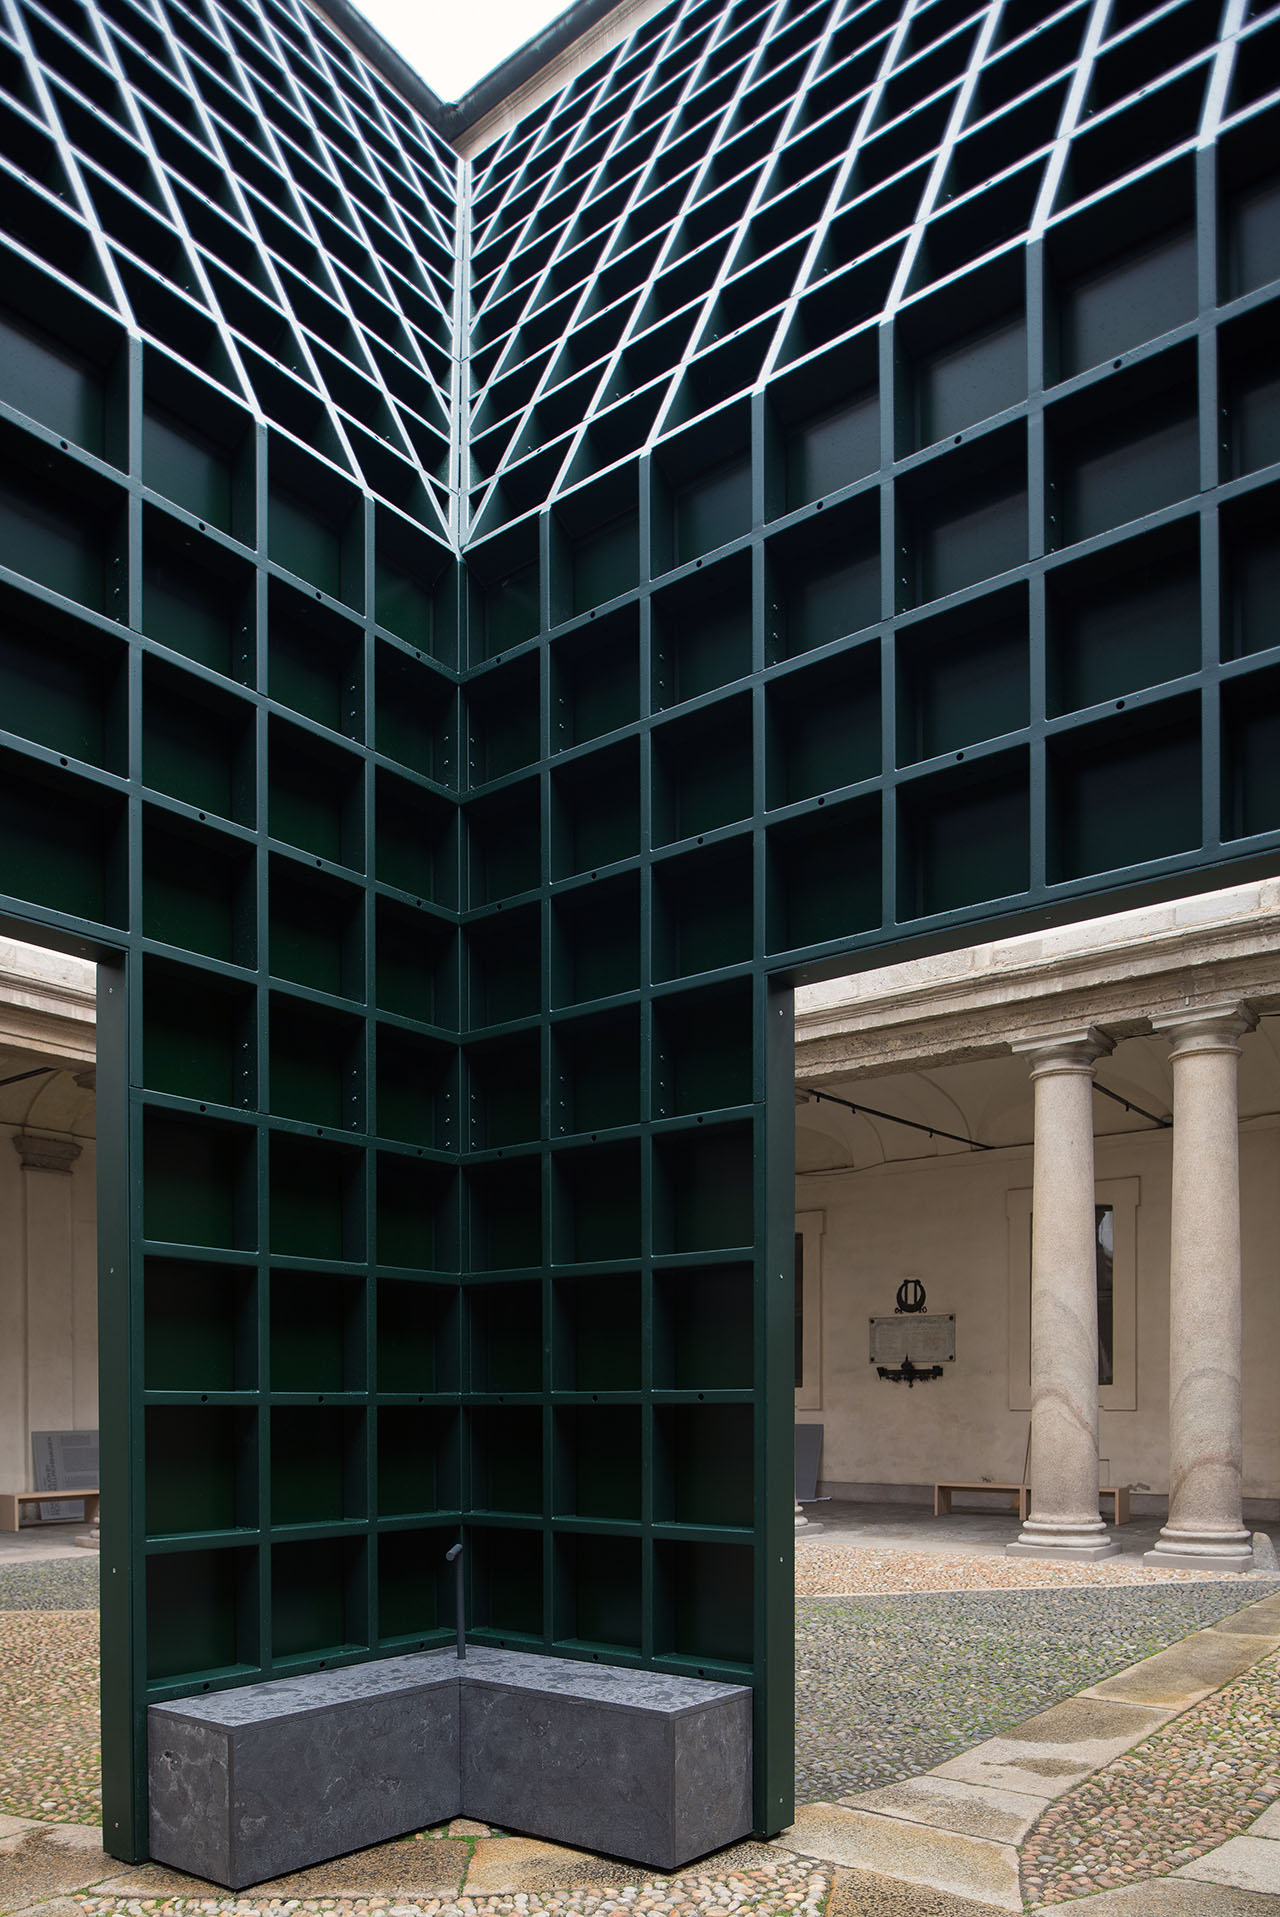 Echo Pavilion by Chilean architecture duo Pezo von Ellrichshausen at Palazzo Litta. Photo by Mauricio Pezo.